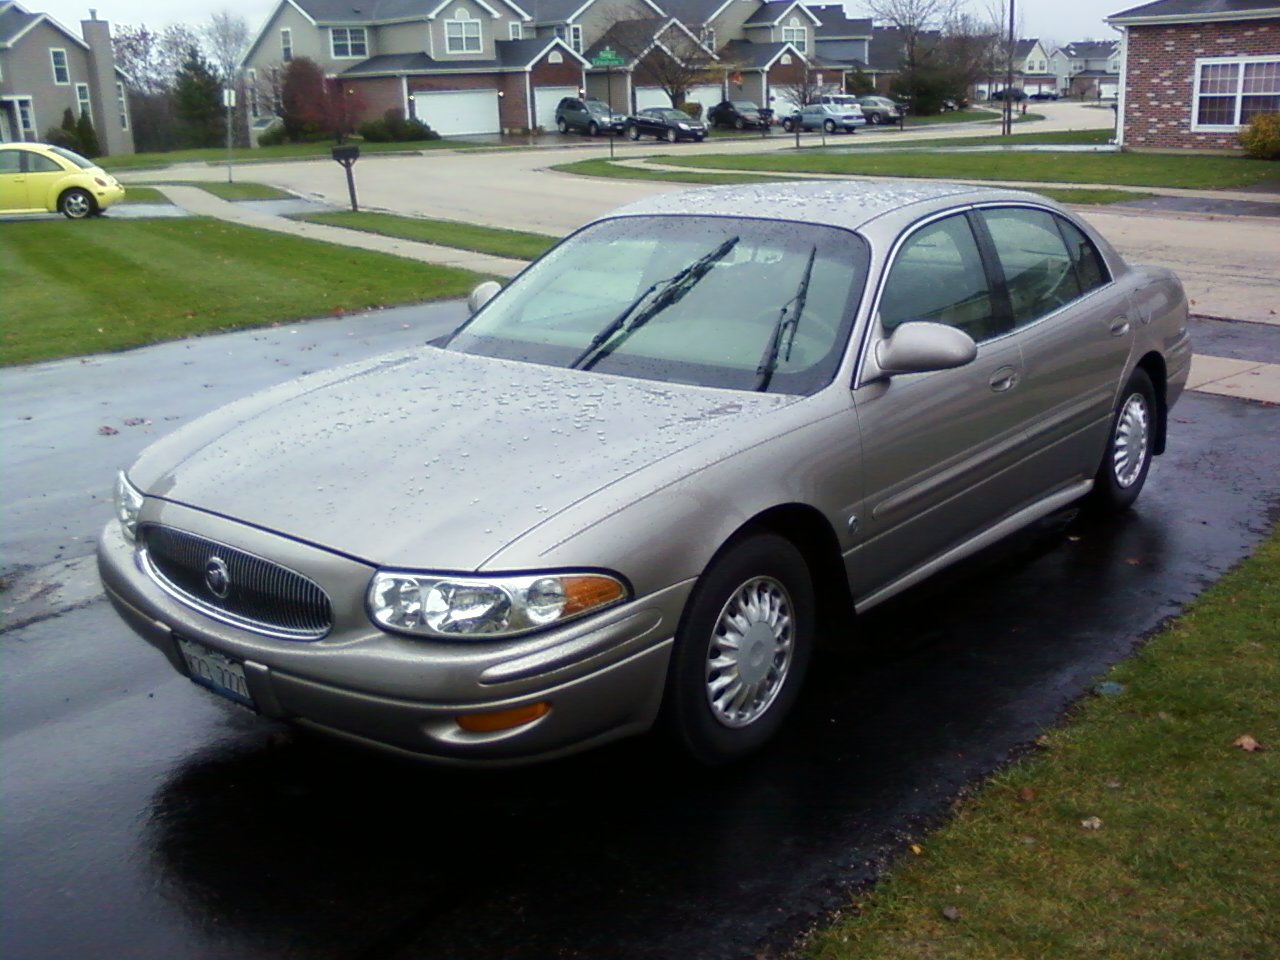 Buick Lesabre 1995: Review, Amazing Pictures and Images ...